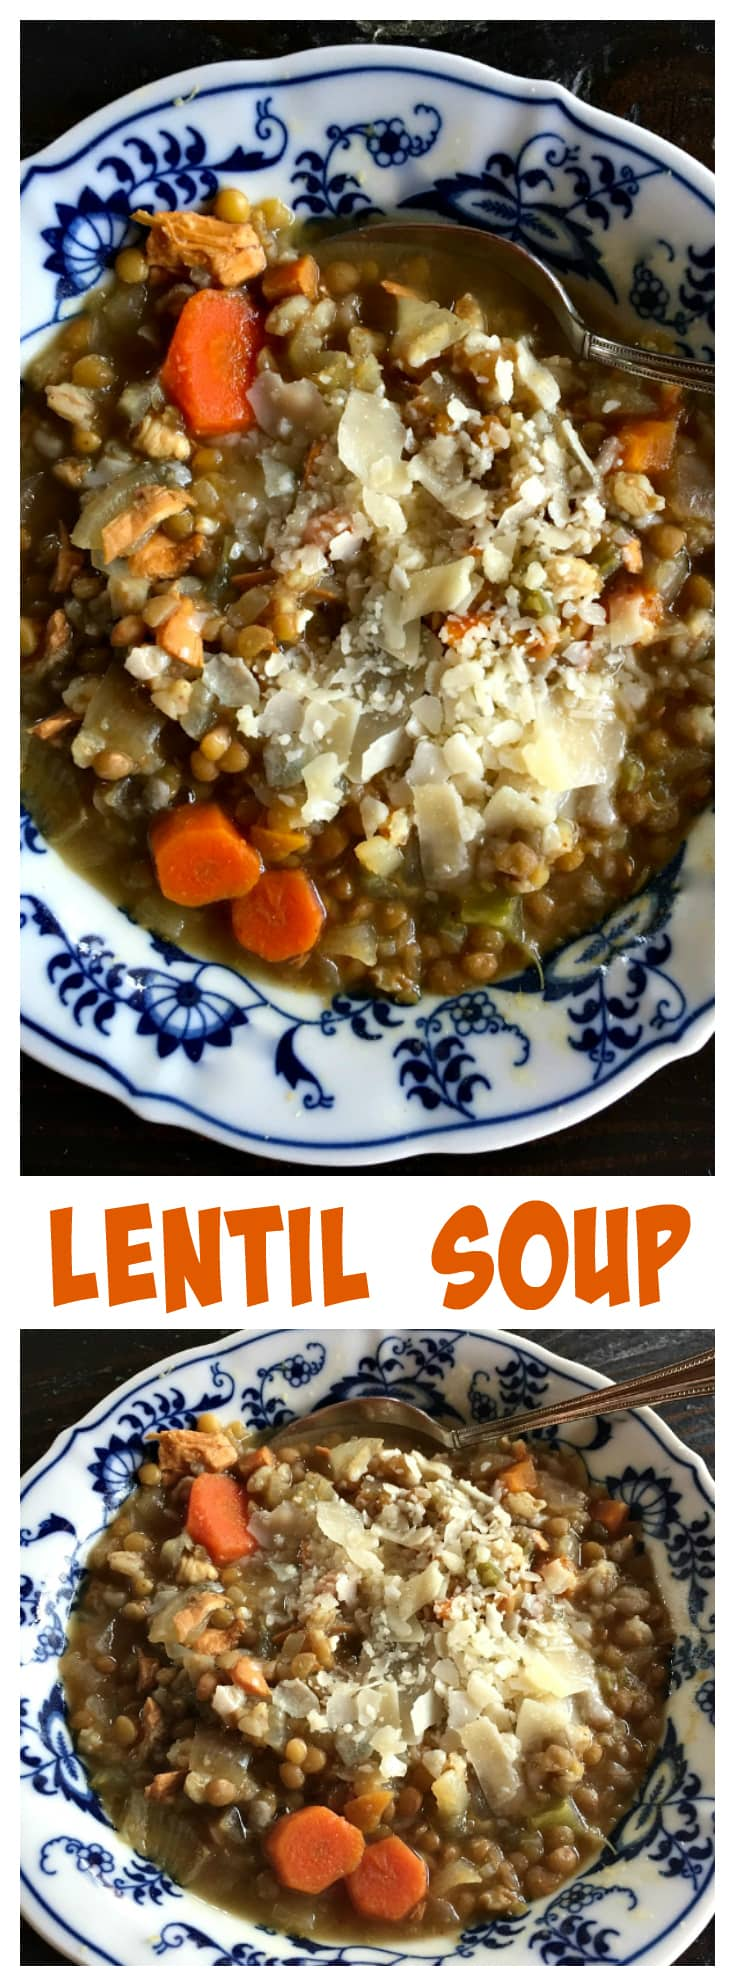 Lentil Soup at ReluctantEntertainer.com